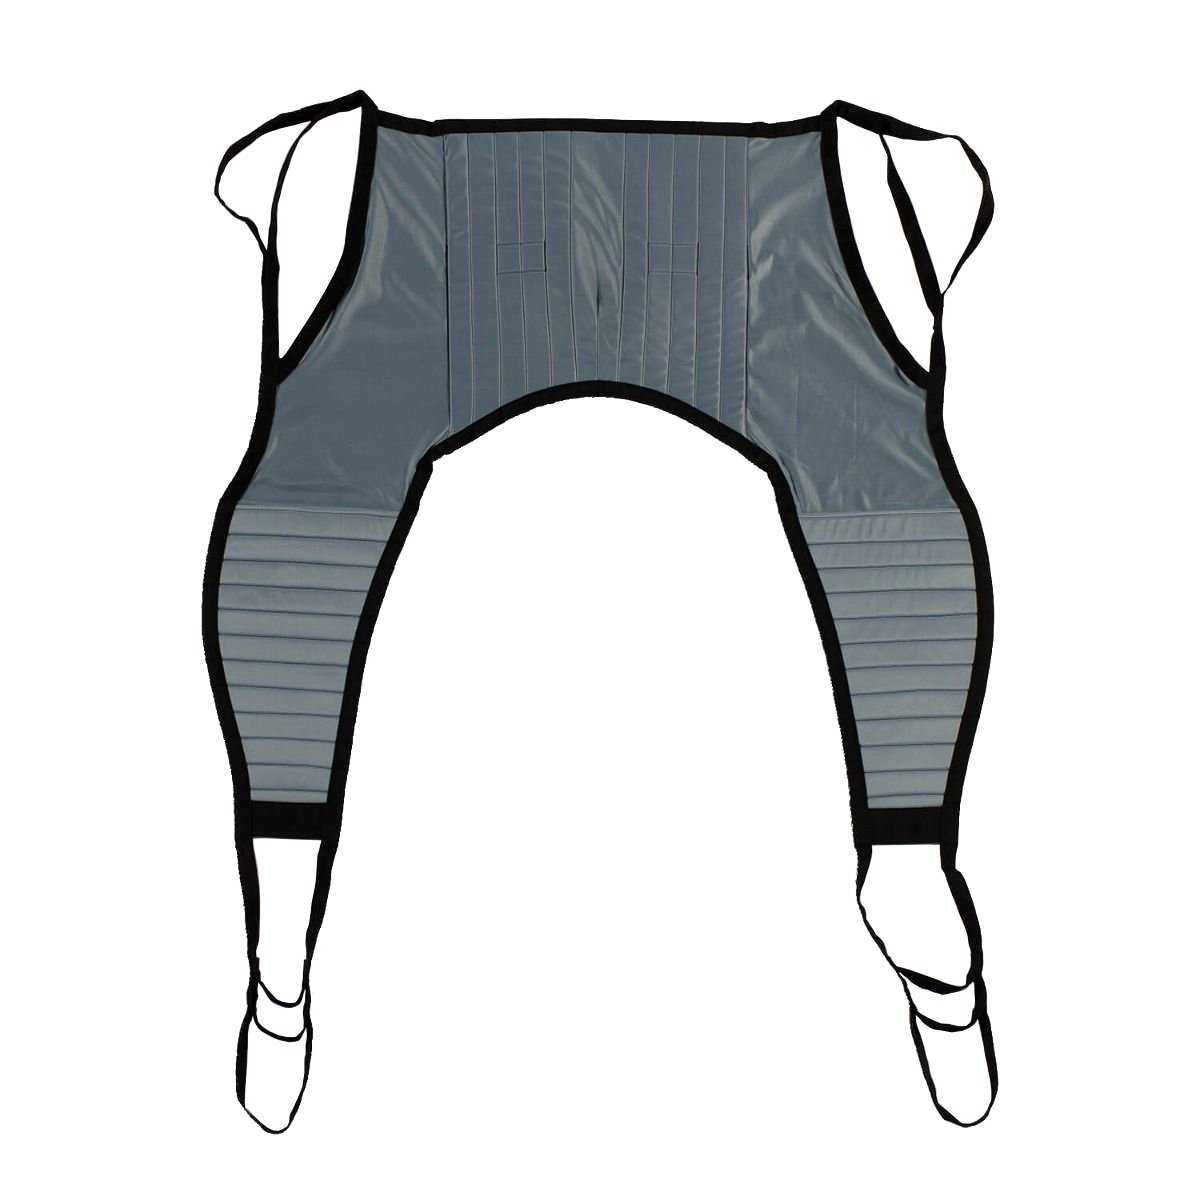 Padded U-Sling Without Head Support, Universal Patient Lift Sling, Size Medium, 600lb Capacity by Patient Aid